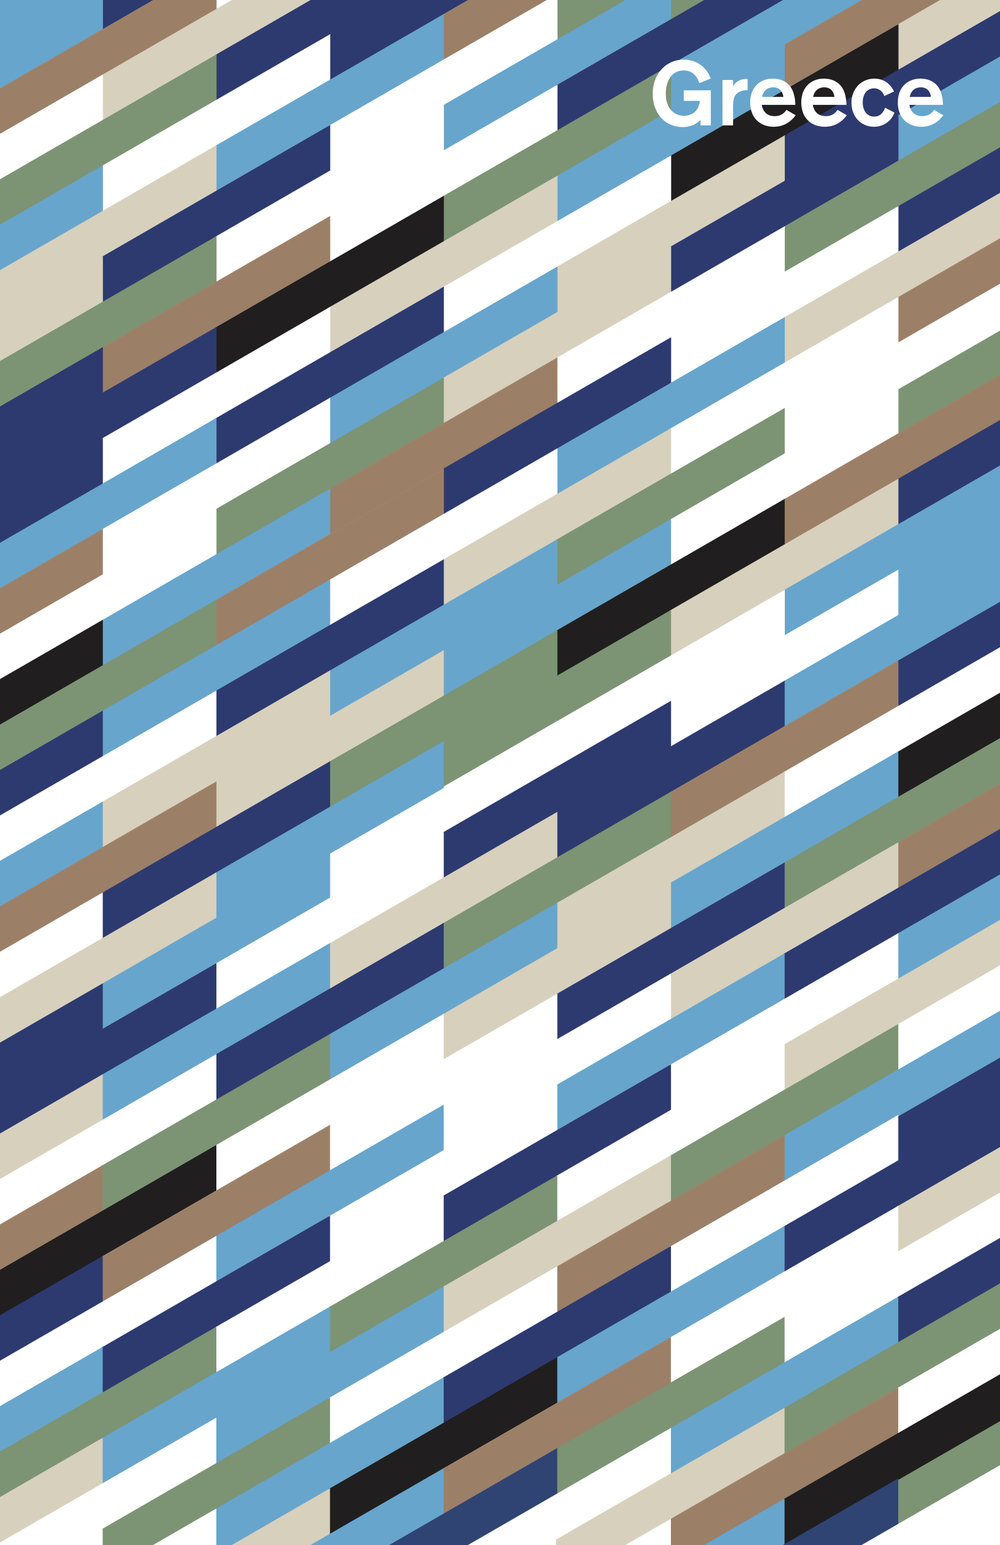 Greece palette; 2017 Color palette of Greece created for Graphic Design 1 class at Northeastern